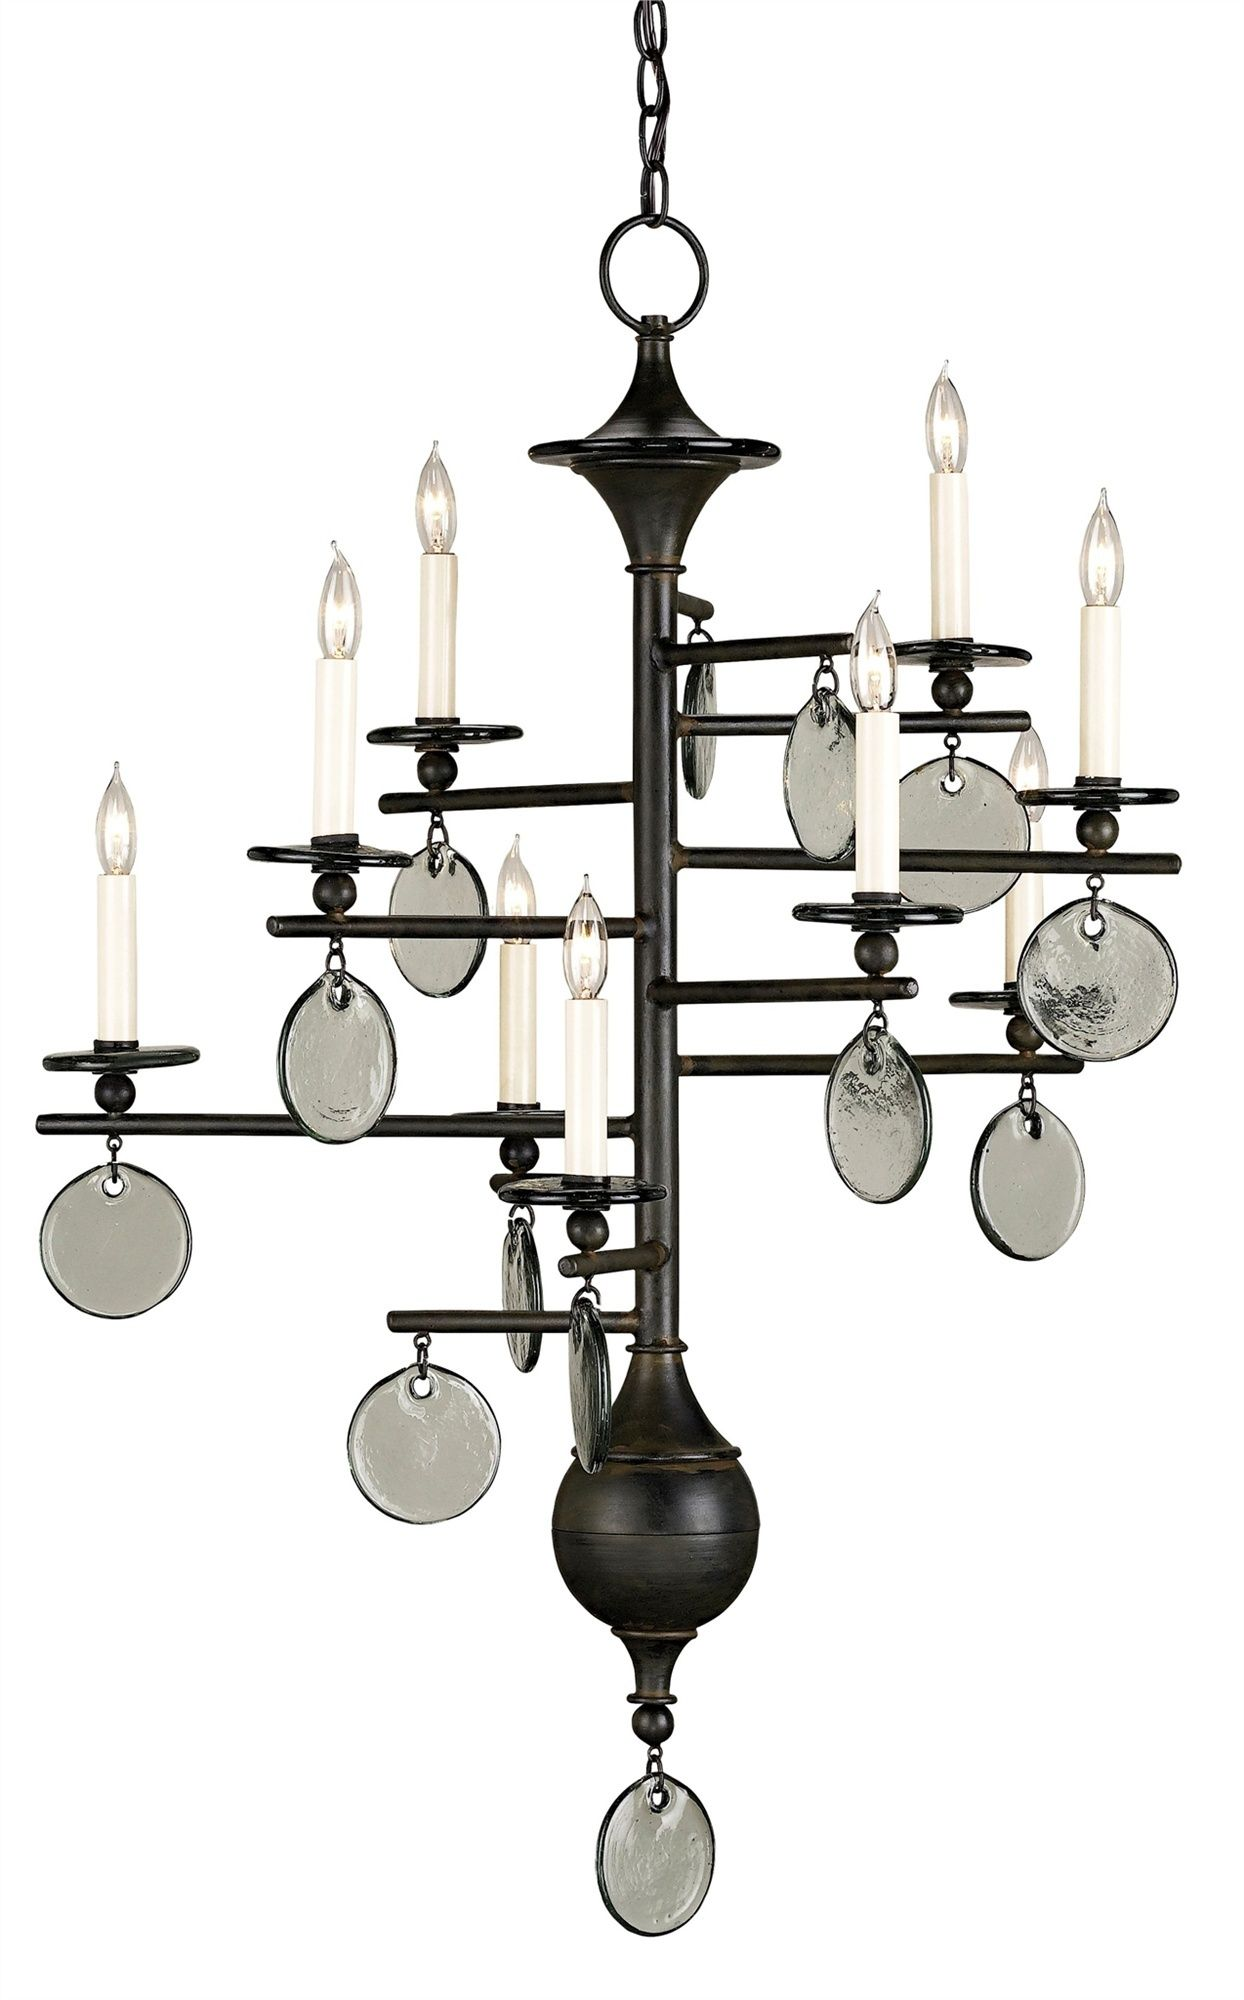 Pin By Yinghuayaner521 On Currey Company Small Chandelier Modern Chandelier Chandelier Lighting